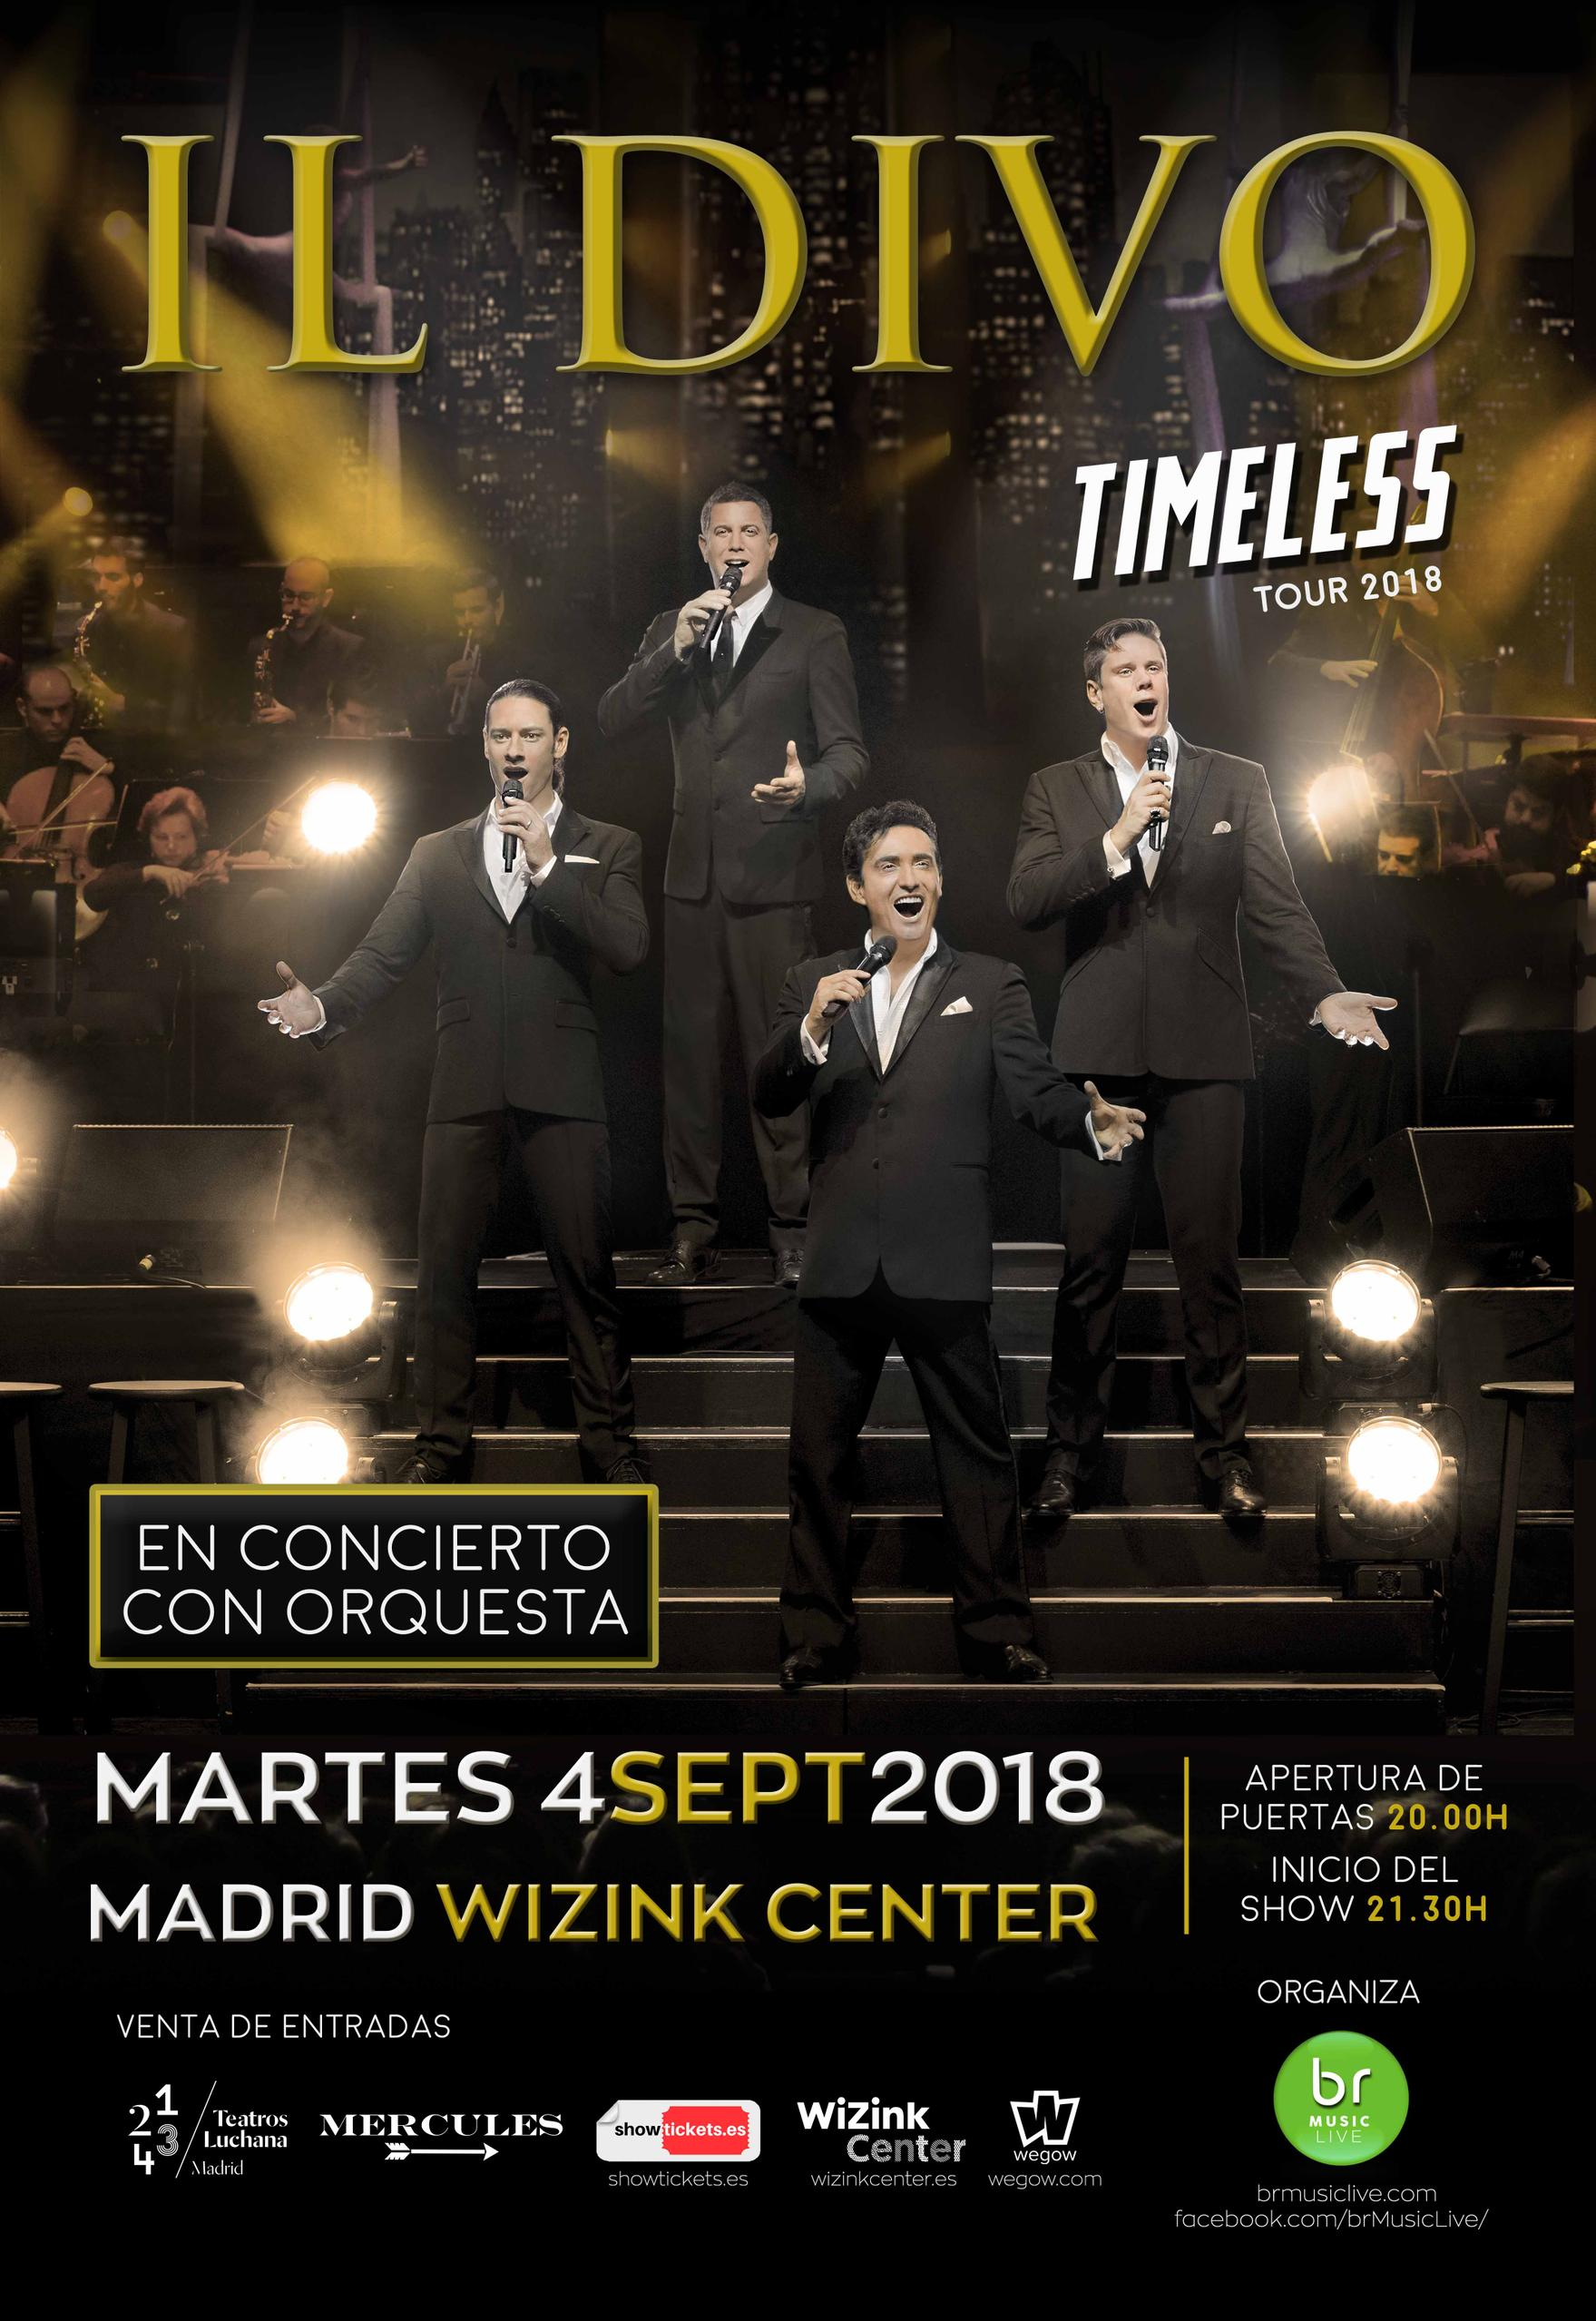 Concierto ILDivo Wizink Center Tour Timeless 04/09/18 ( FOTOS ) , ( CRONICA)